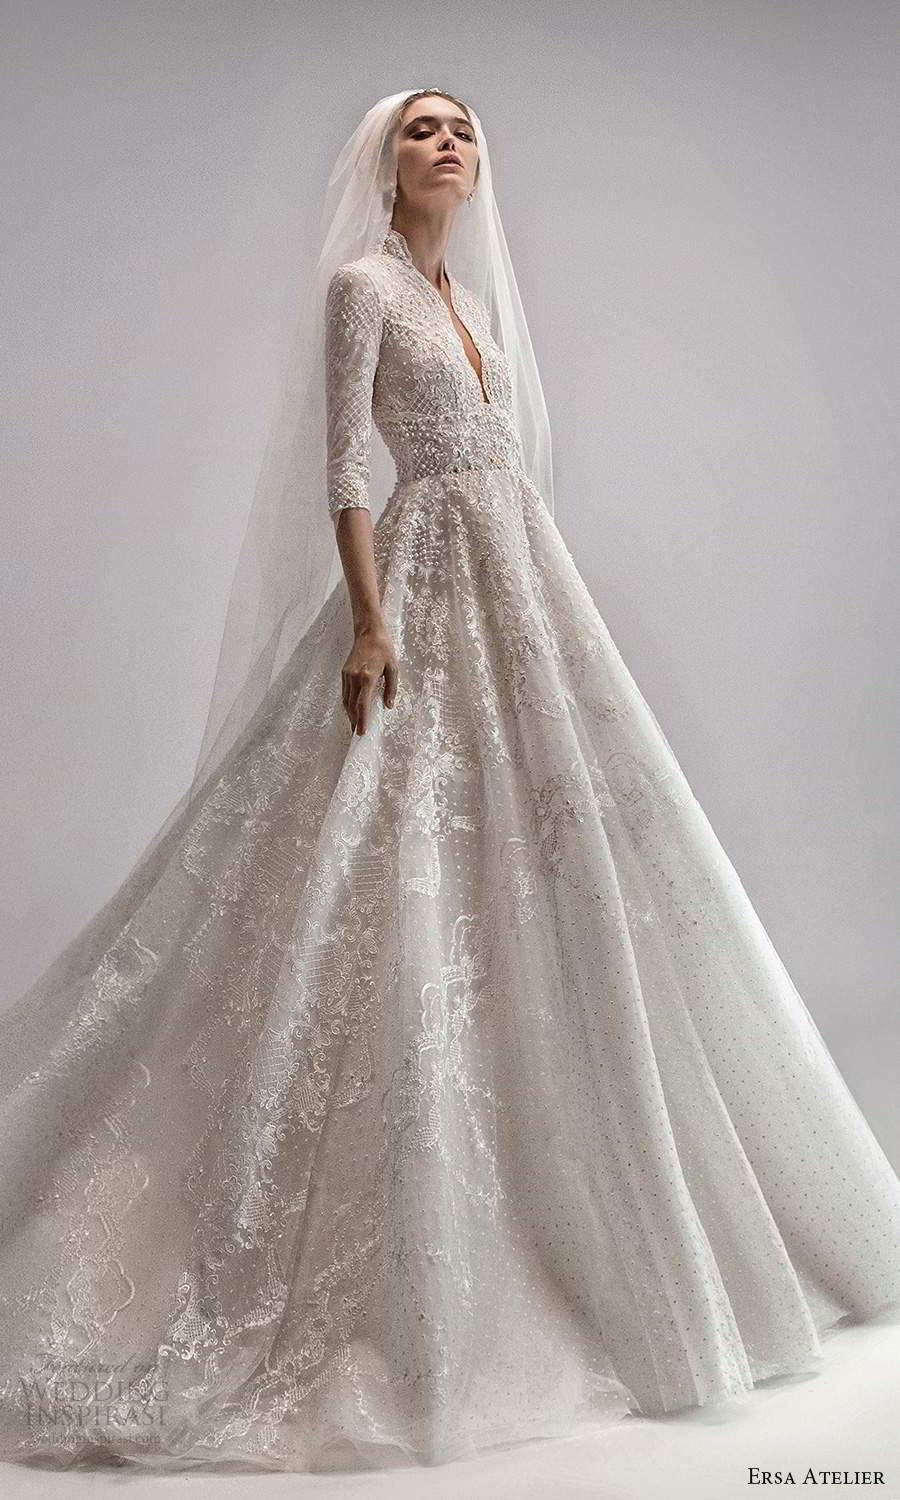 ersa atelier spring 2021 bridal 3 quarter sleeve high plunging v neckline fully embellished a line ball gown wedding dress chapel train (7) mv